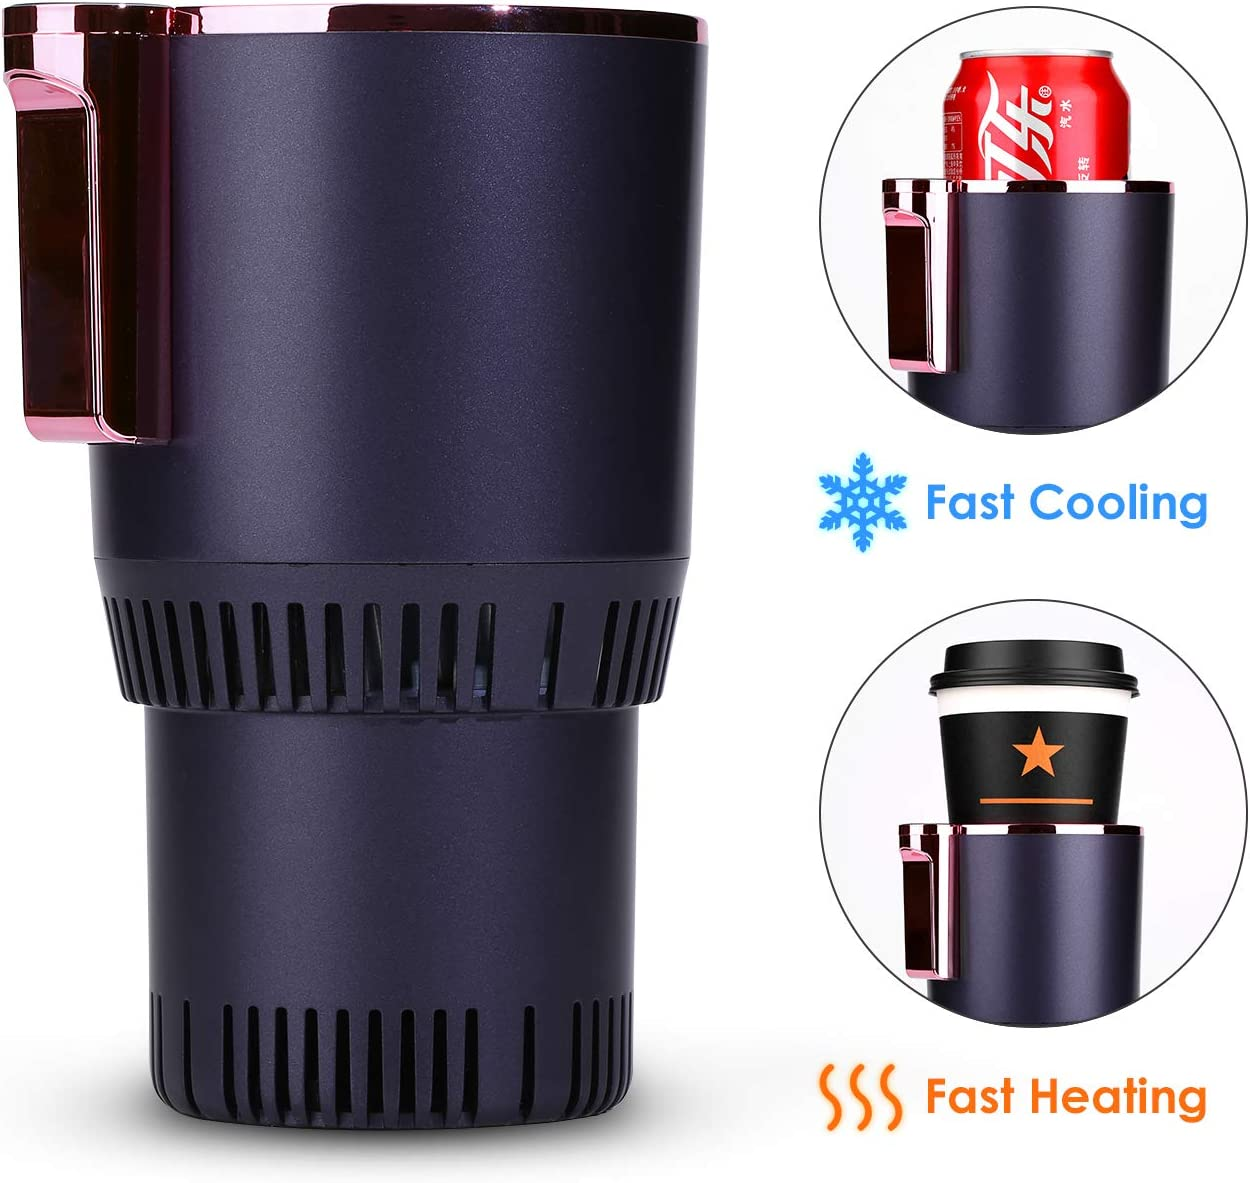 2-in-1 Smart Car Cup Warmer and Cooler, Auto Car Cooling and Heating Cup Mug Holder, Car Seat for Water Coffee Beverage Milk Warmer Heater Cooler for Commuter/Road Tripper Present